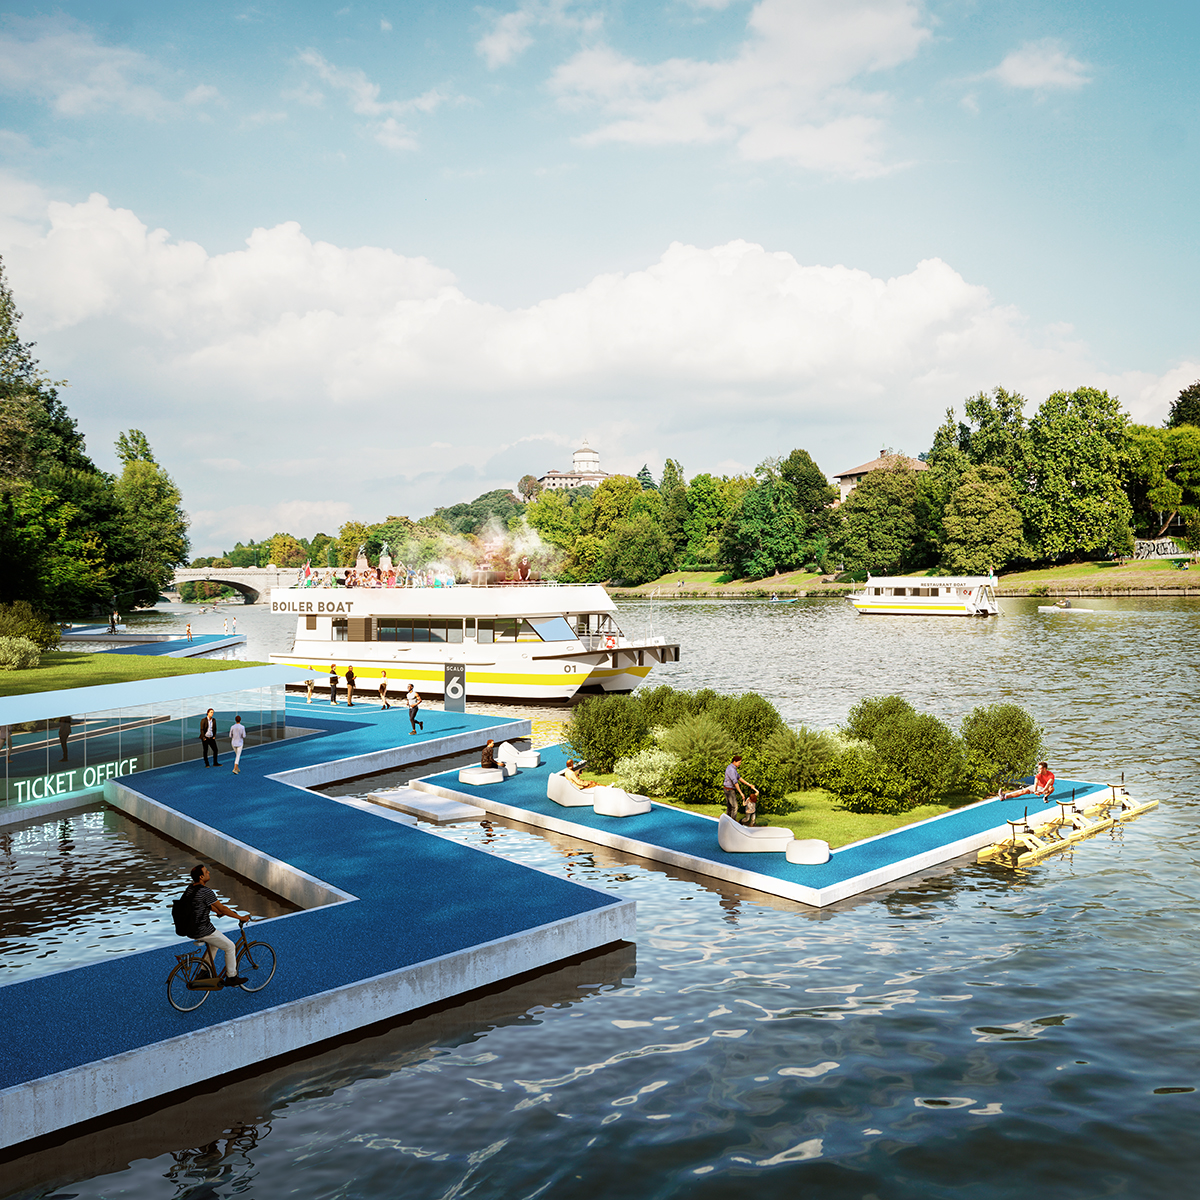 Rendering of a walkway floating in a turin river